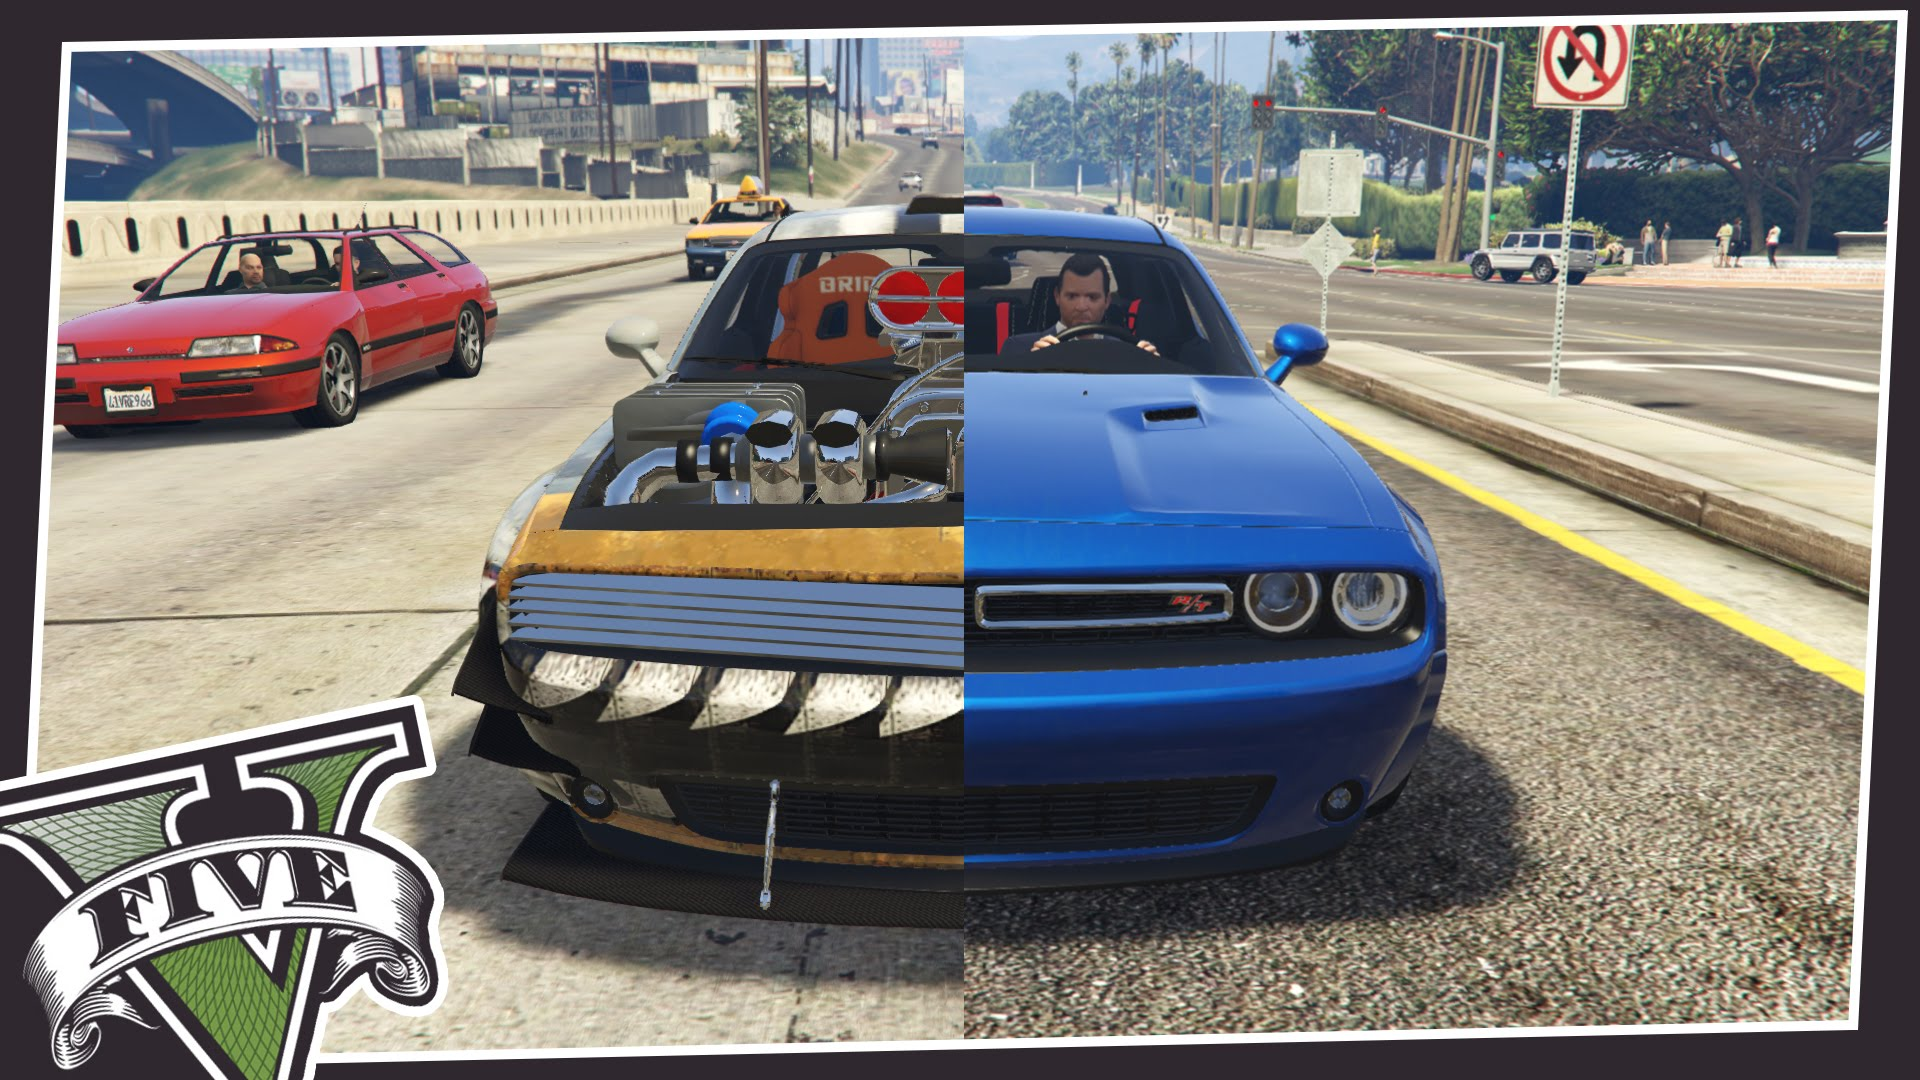 THE NEW BEST MODIFIED CAR MOD IN GTA 5?! - YouTube